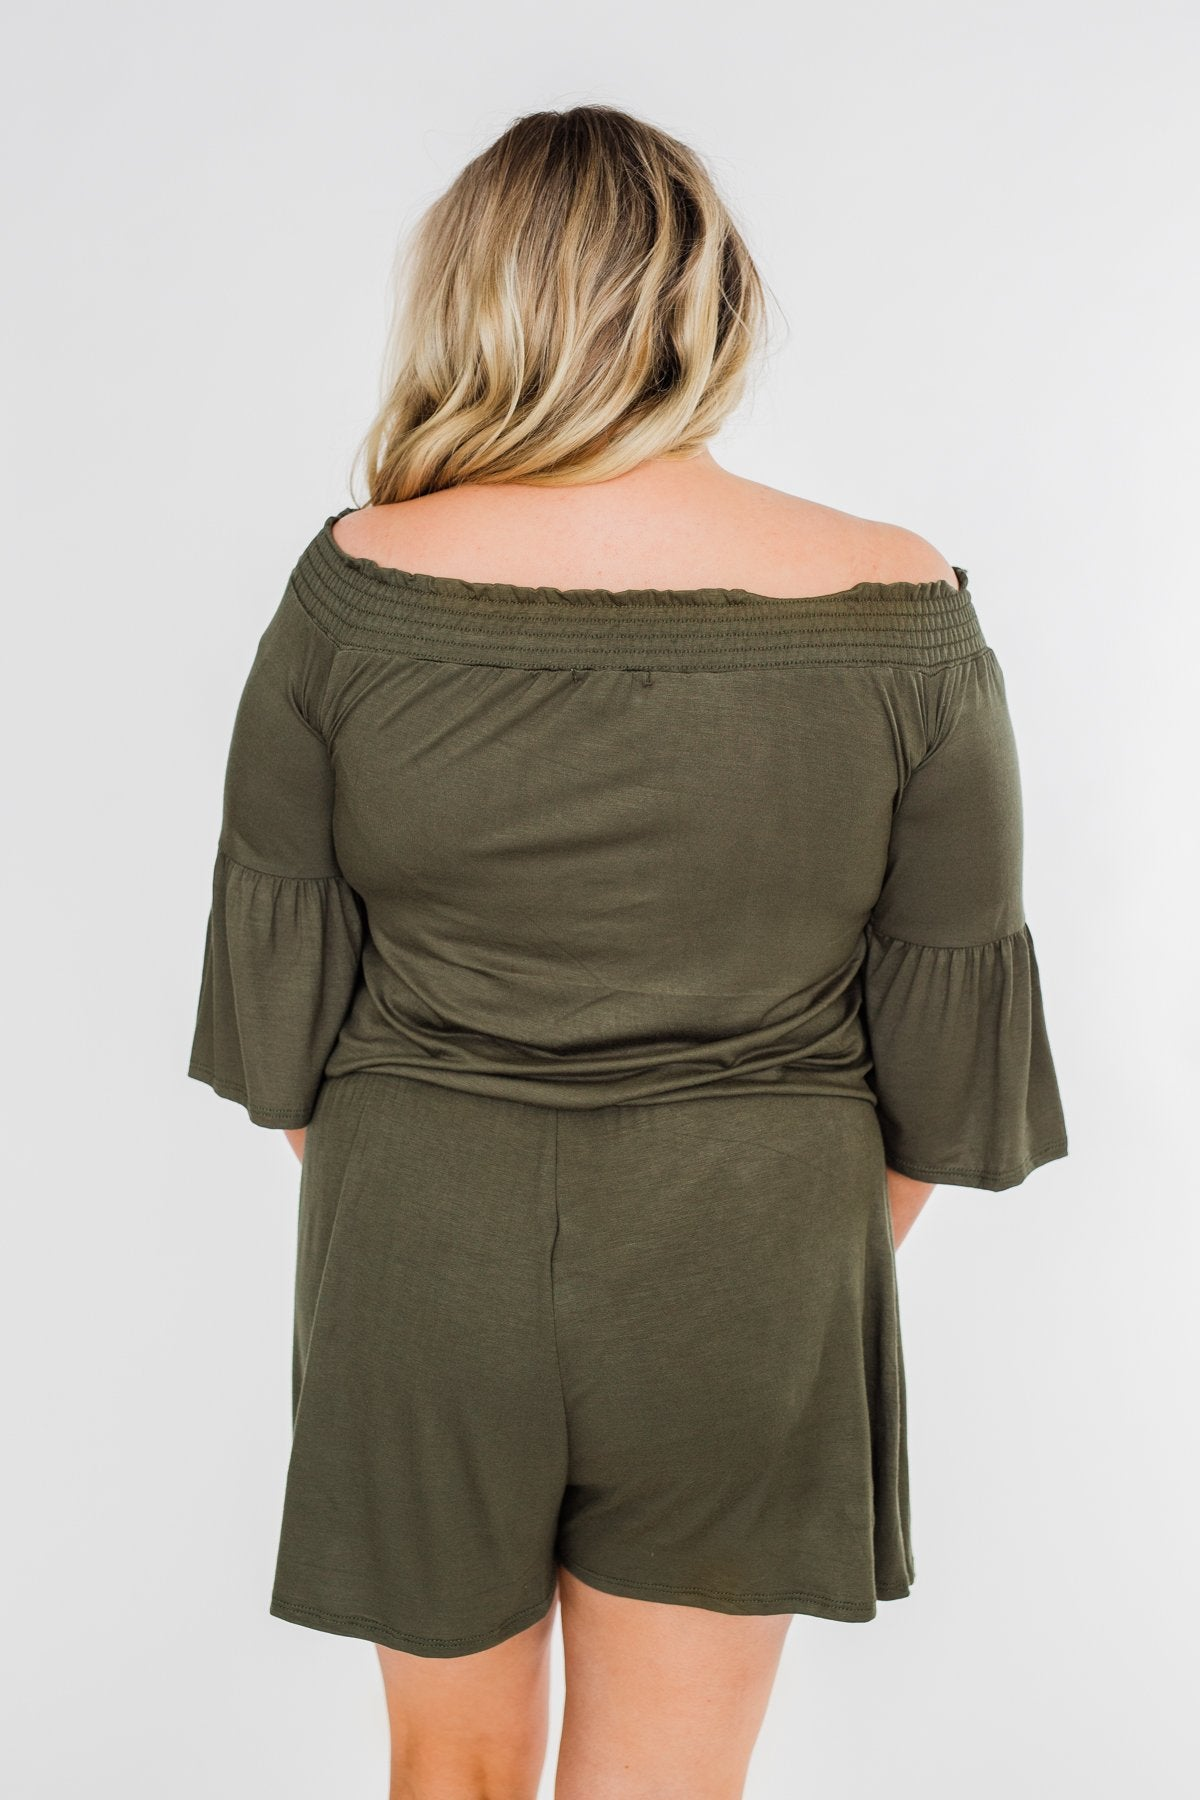 Never Better Off The Shoulder Romper- Olive